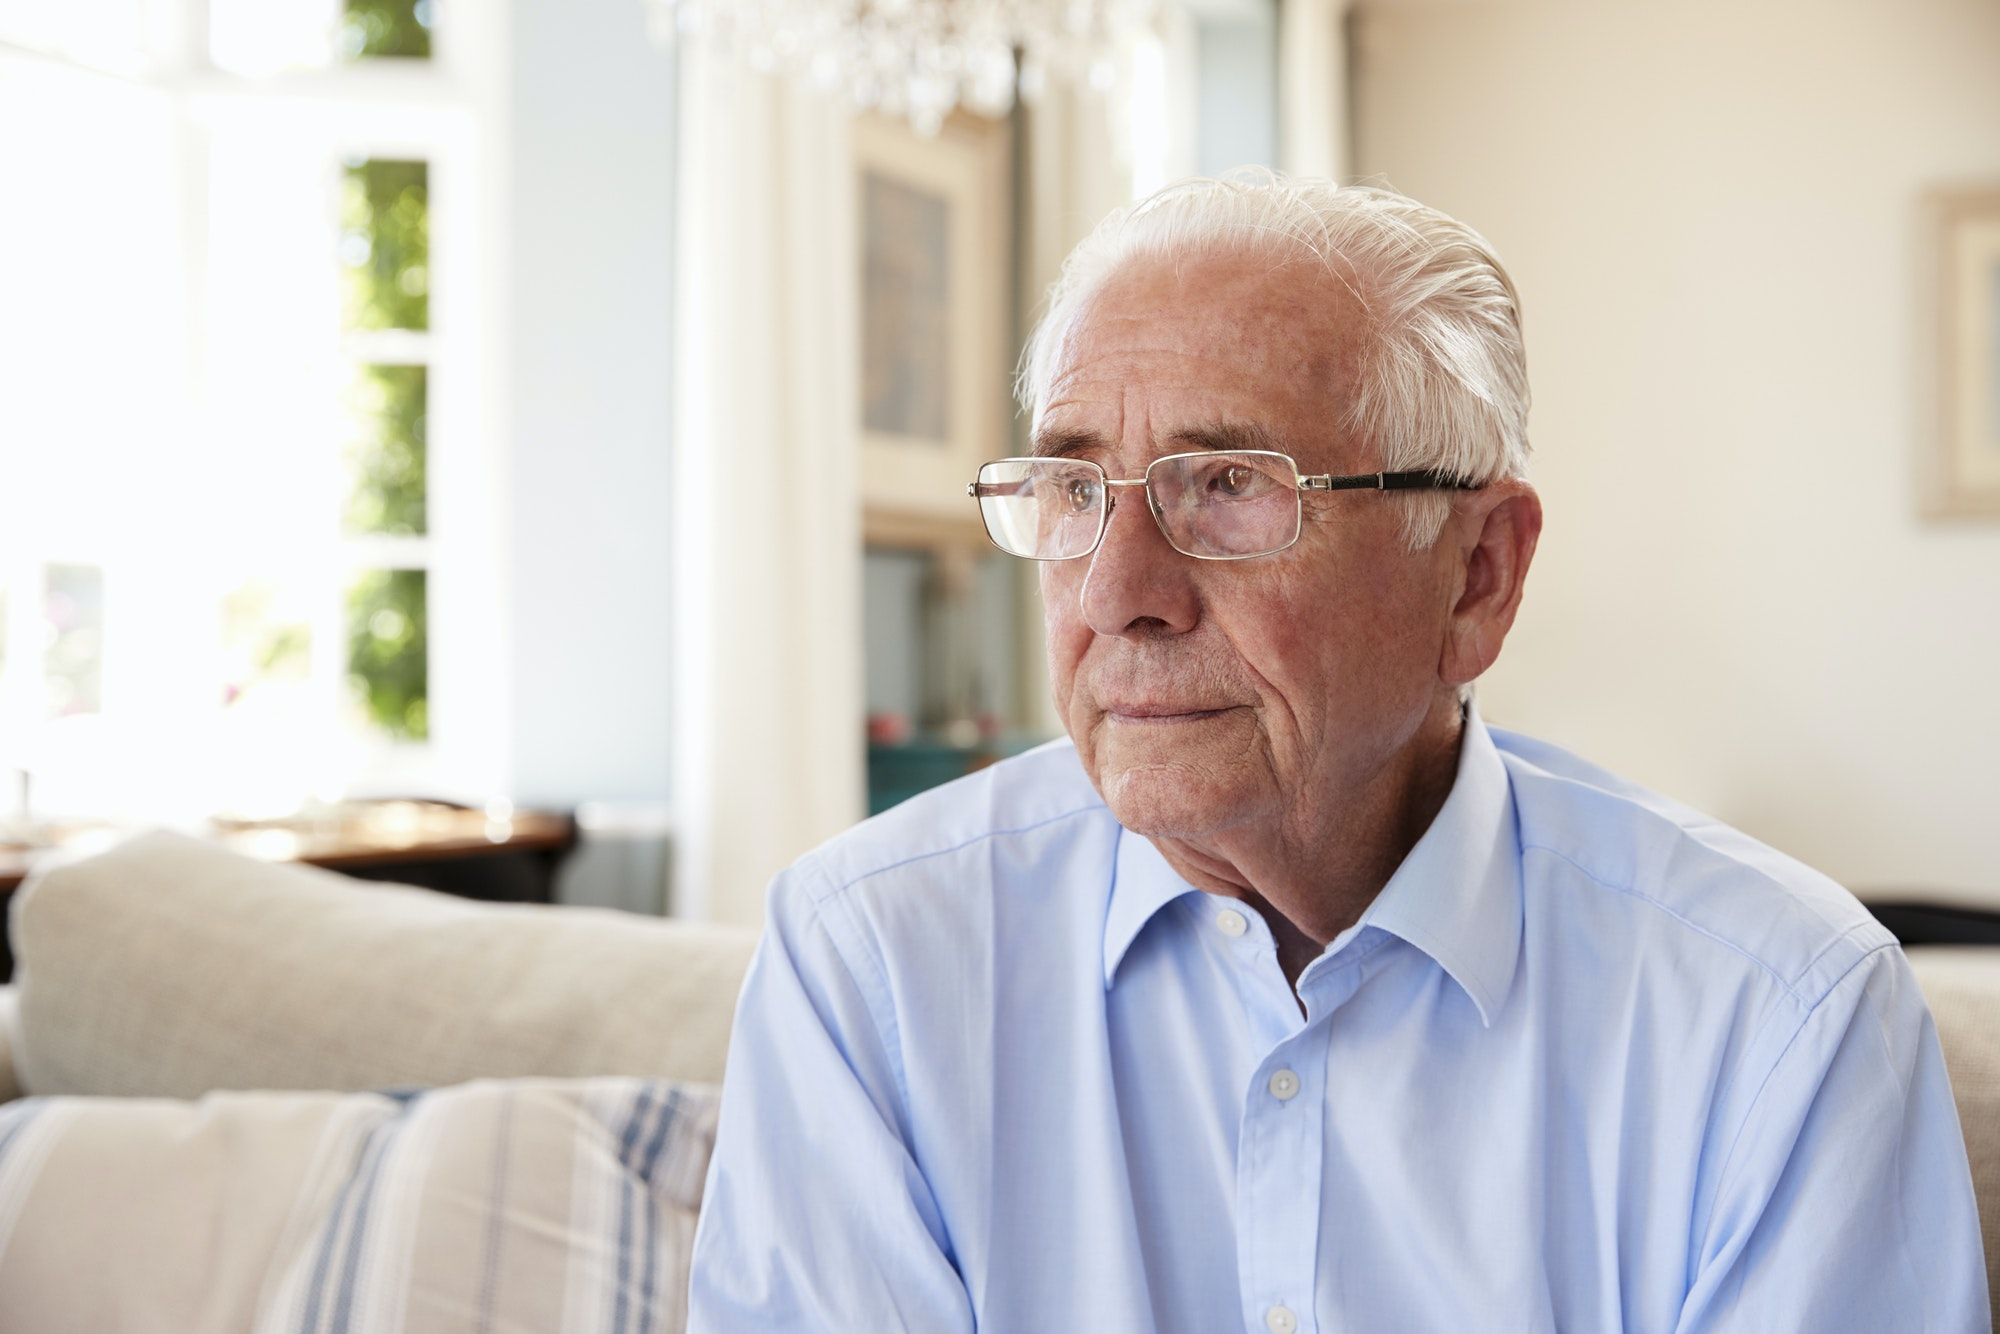 Senior Man Sitting On Sofa At Home Suffering From Depression